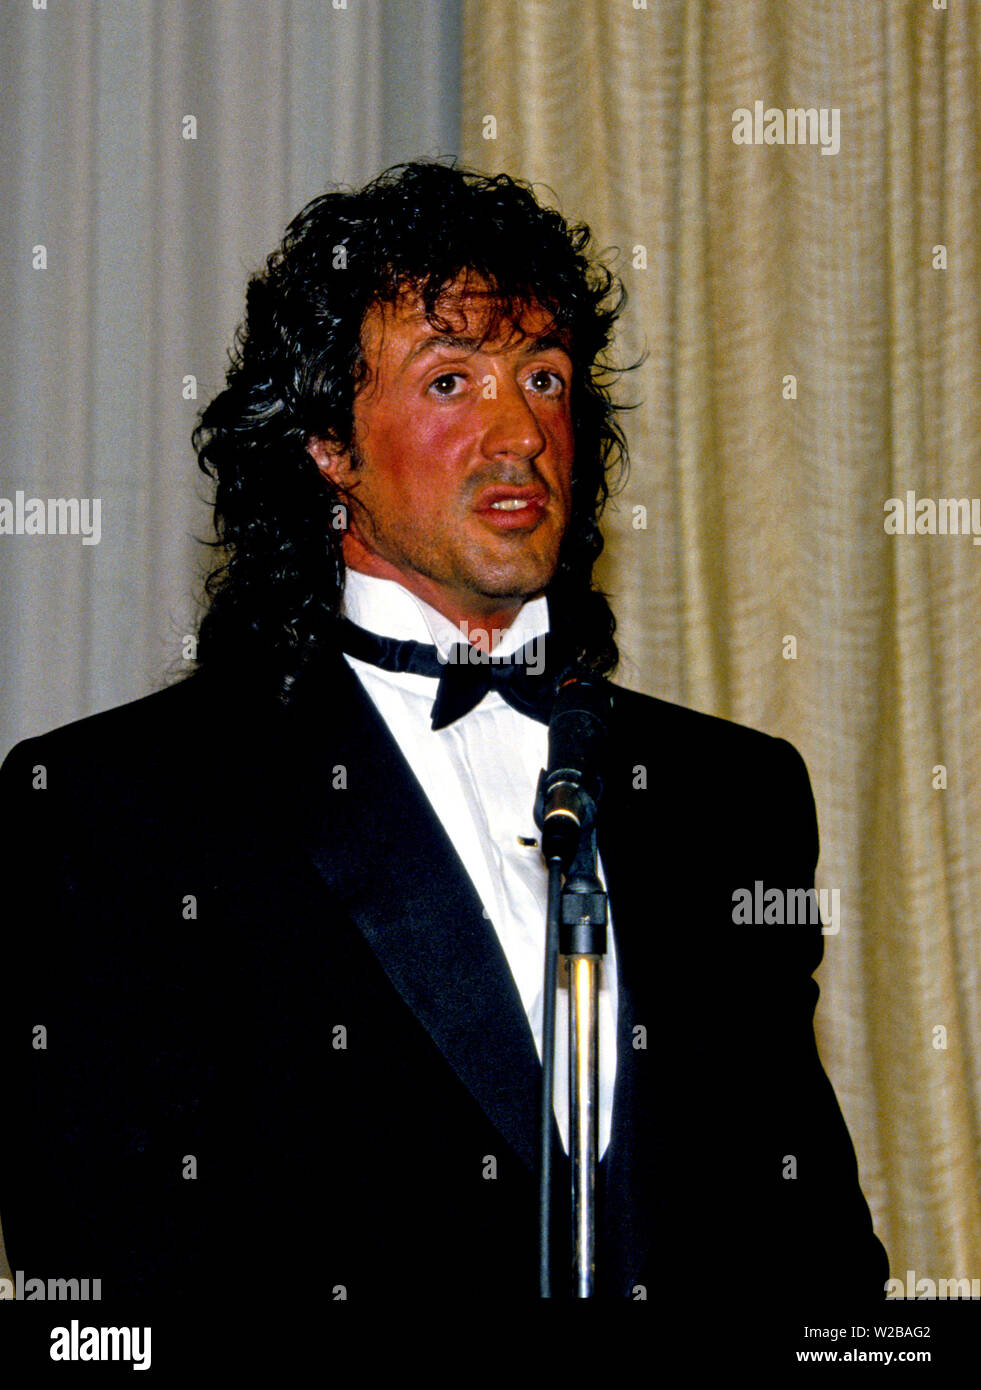 Washington, District of Columbia, USA. 23rd Jan, 1988. American actor, director, screenwriter, and producer Sylvester Stallone makes remarks after accepting the President's Council on Physical Fitness award at the Washington, DC Touchdown Club dinner in Washington, DC on January 23, 1988. Credit: Arnie Sachs/CNP Credit: Arnie Sachs/CNP/ZUMA Wire/Alamy Live News - Stock Image